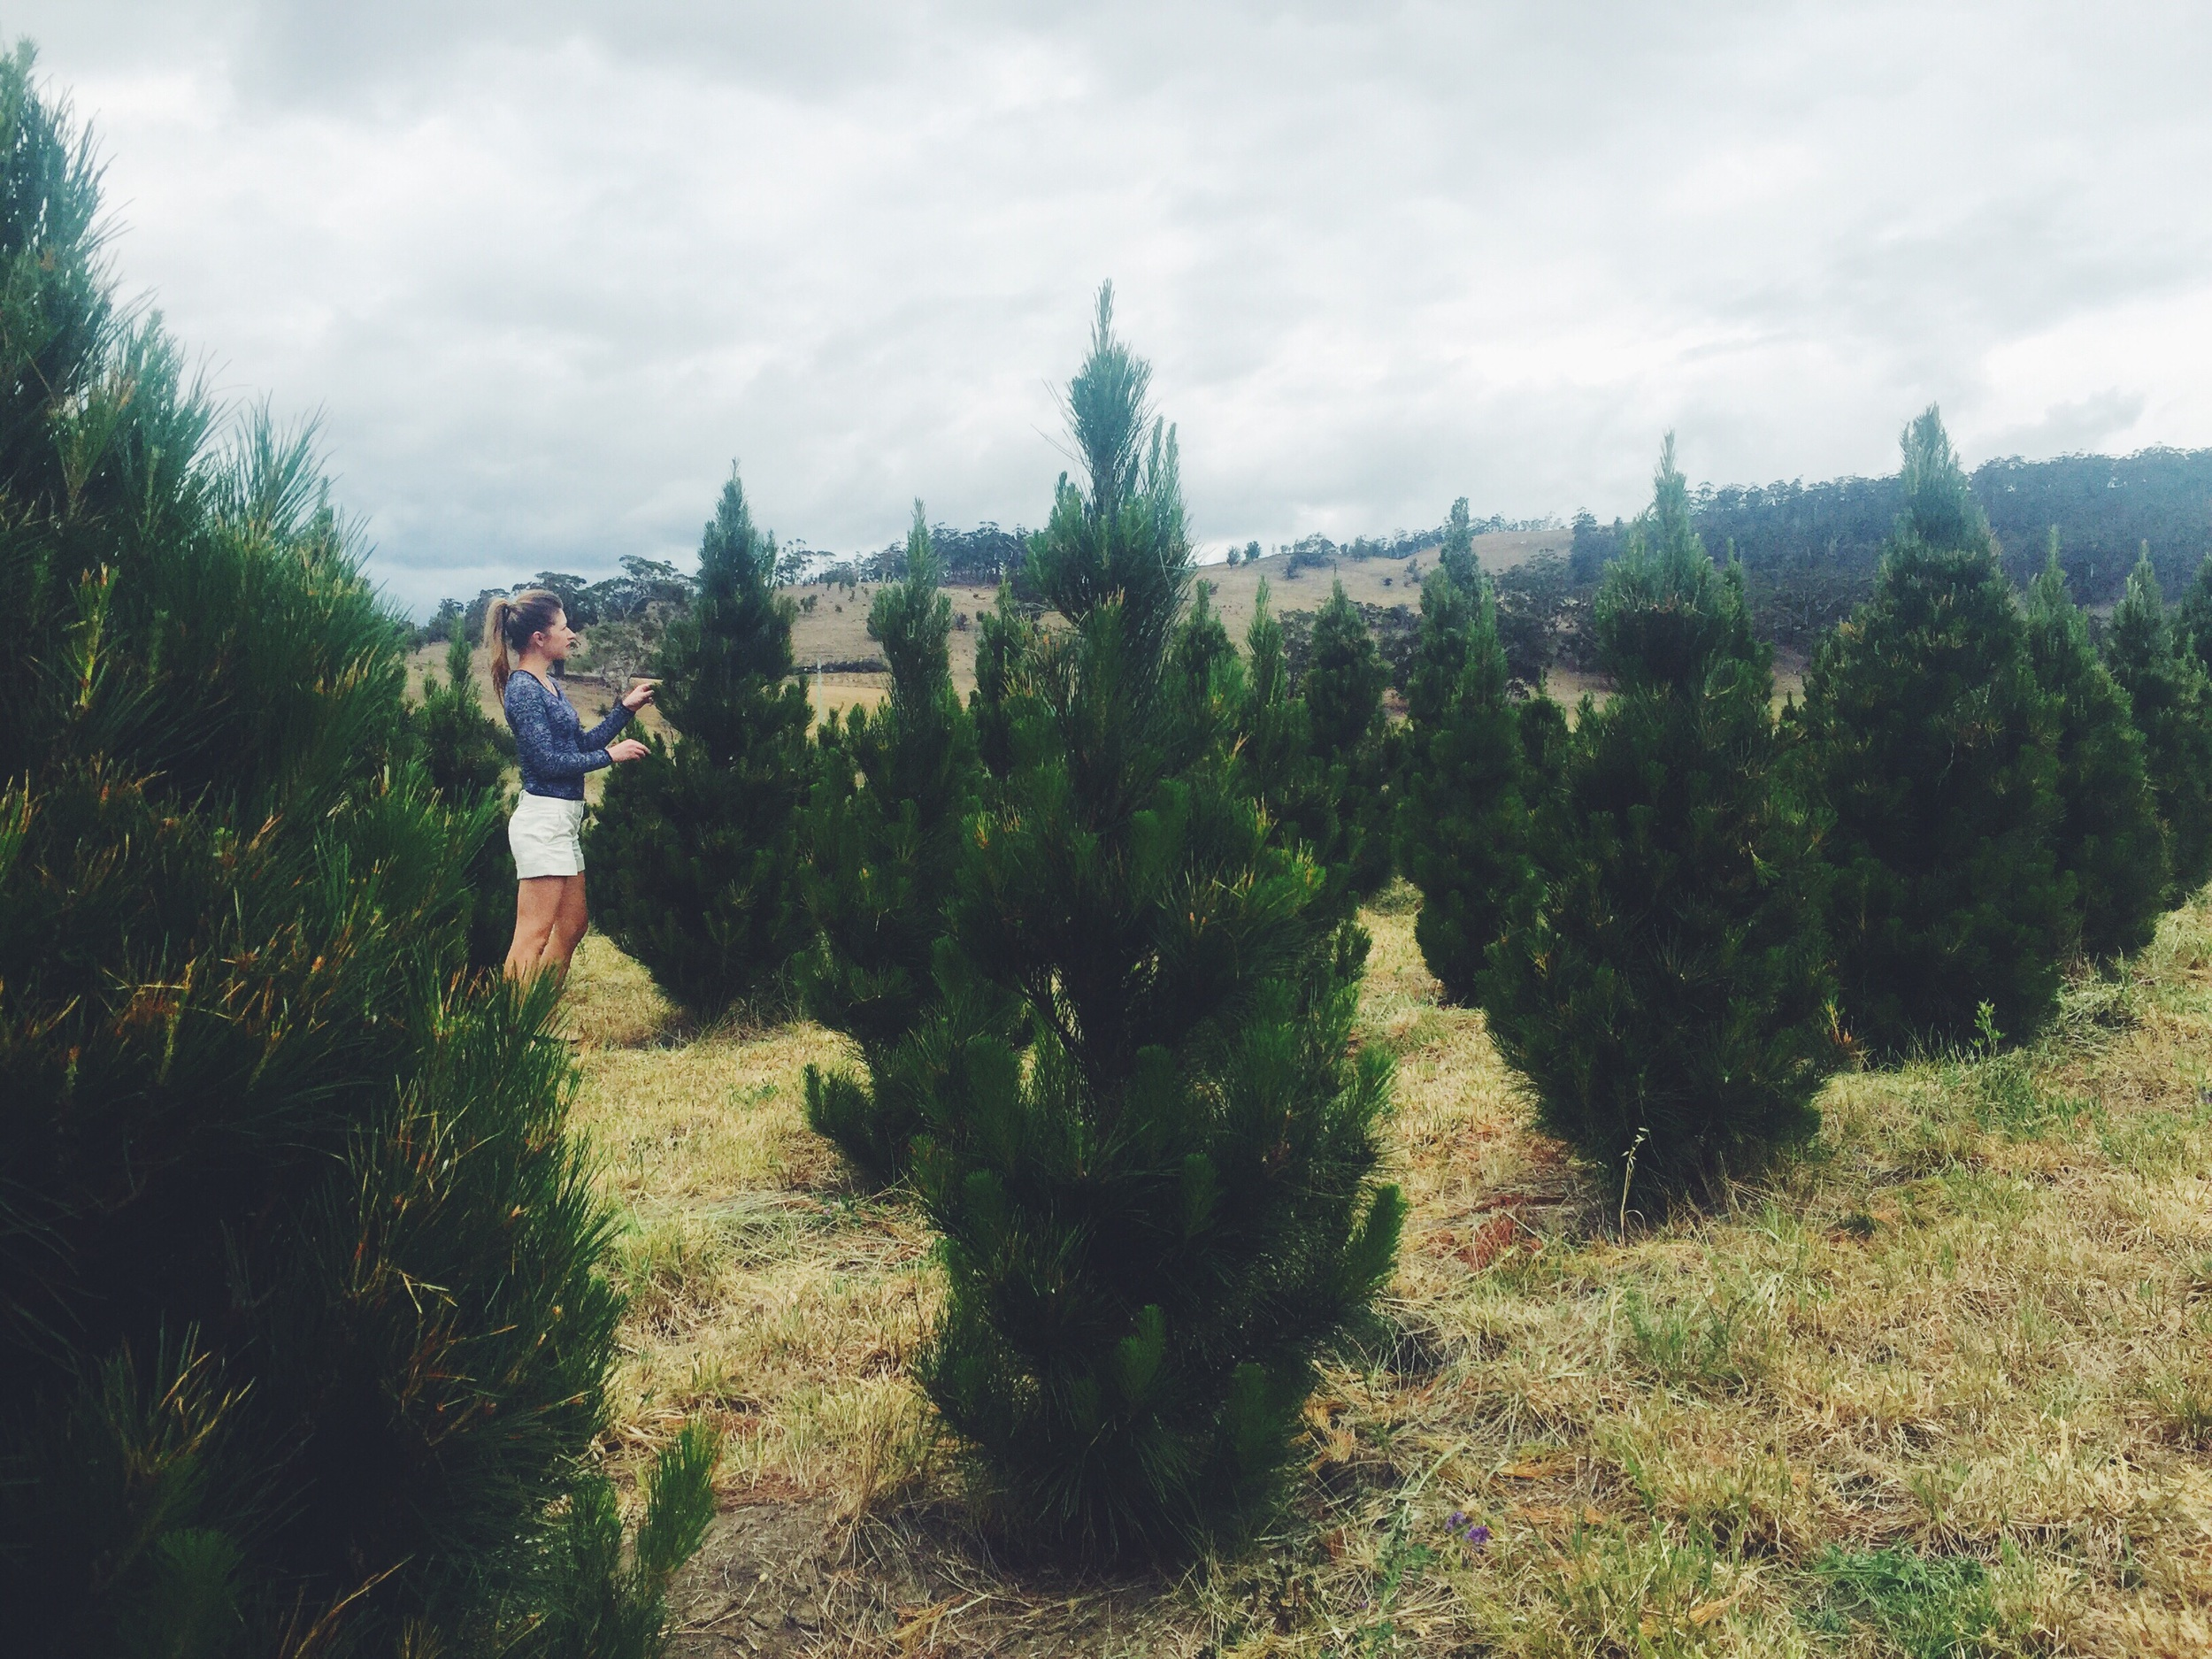 Searching for the 'one' at Richmond Christmas Tree Farm